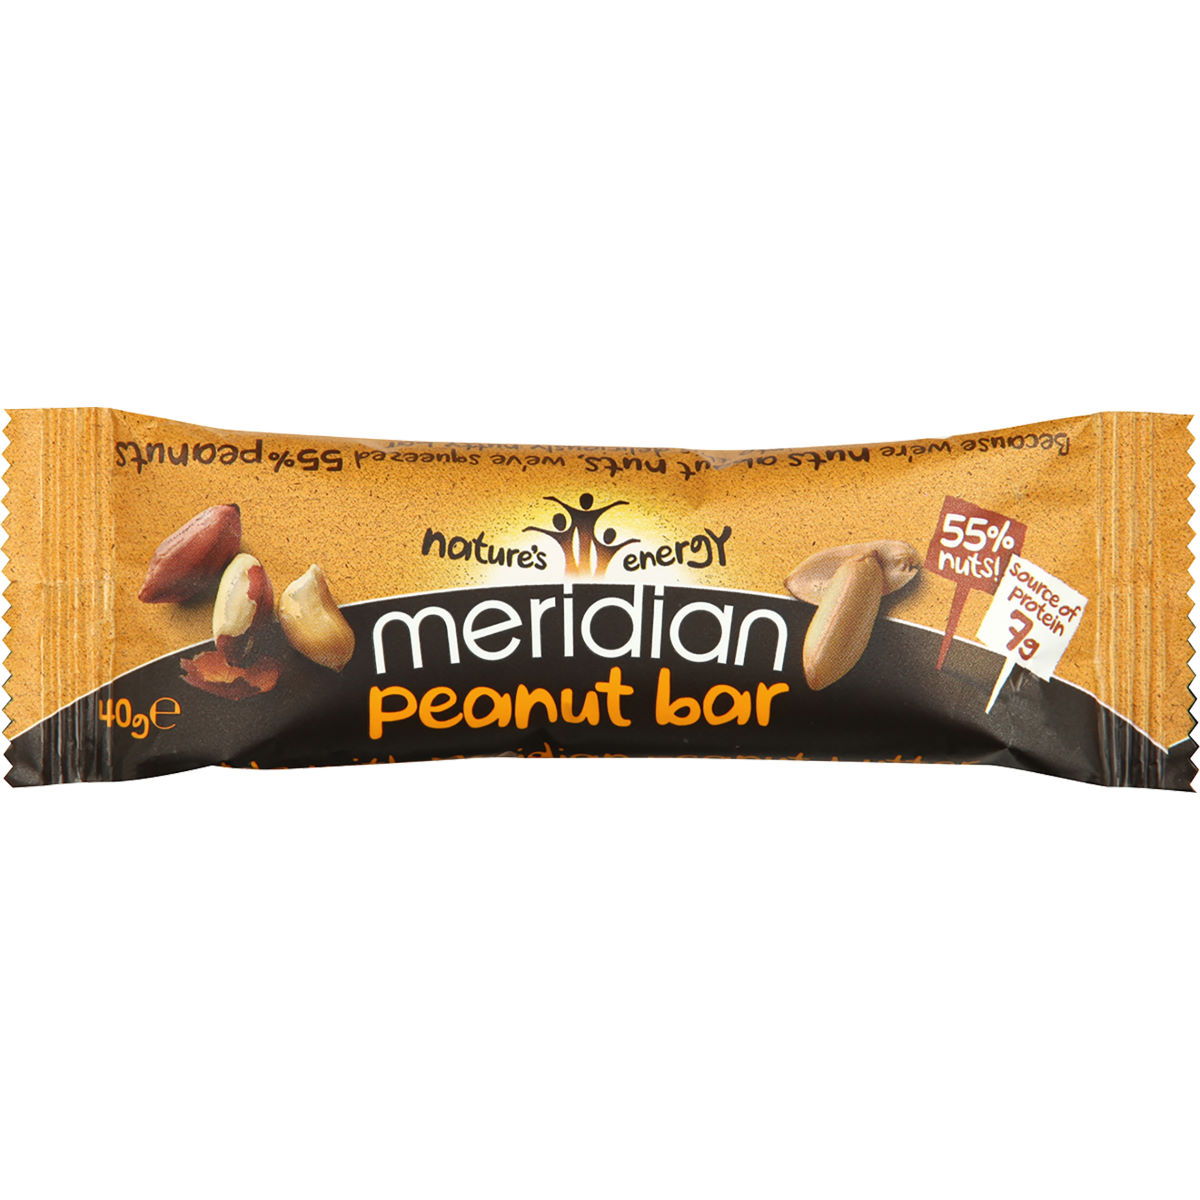 Barre Meridian Cacahuète (18 x 40 g) - 18 x 40g 11-20 Peanut Barres